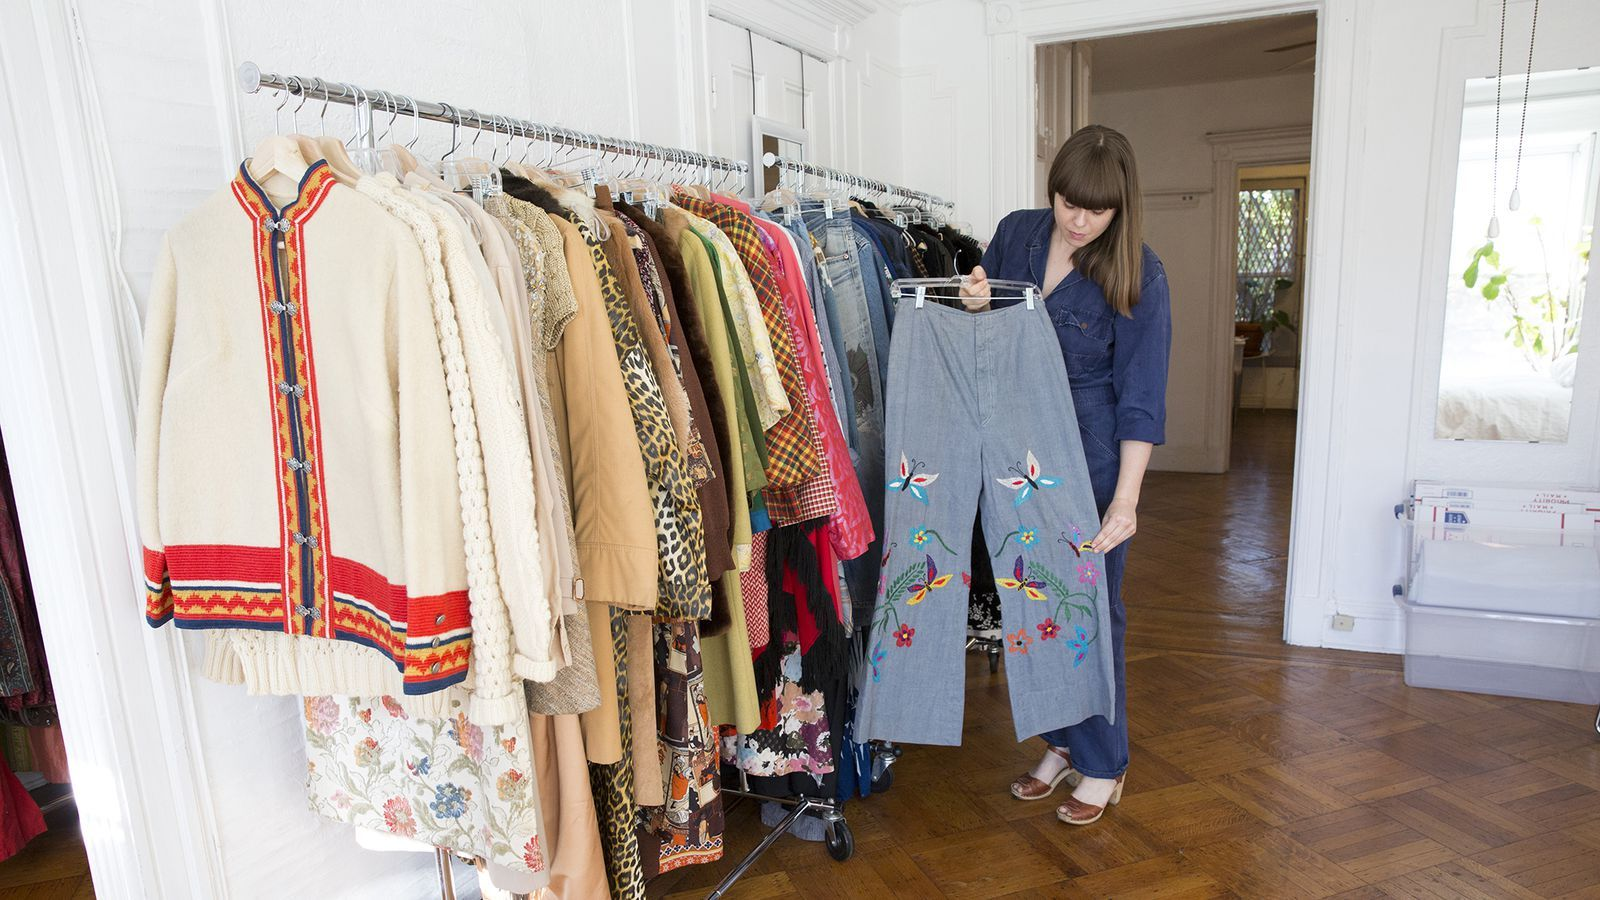 How Much Money Does It Take To Start An Online Vintage Shop